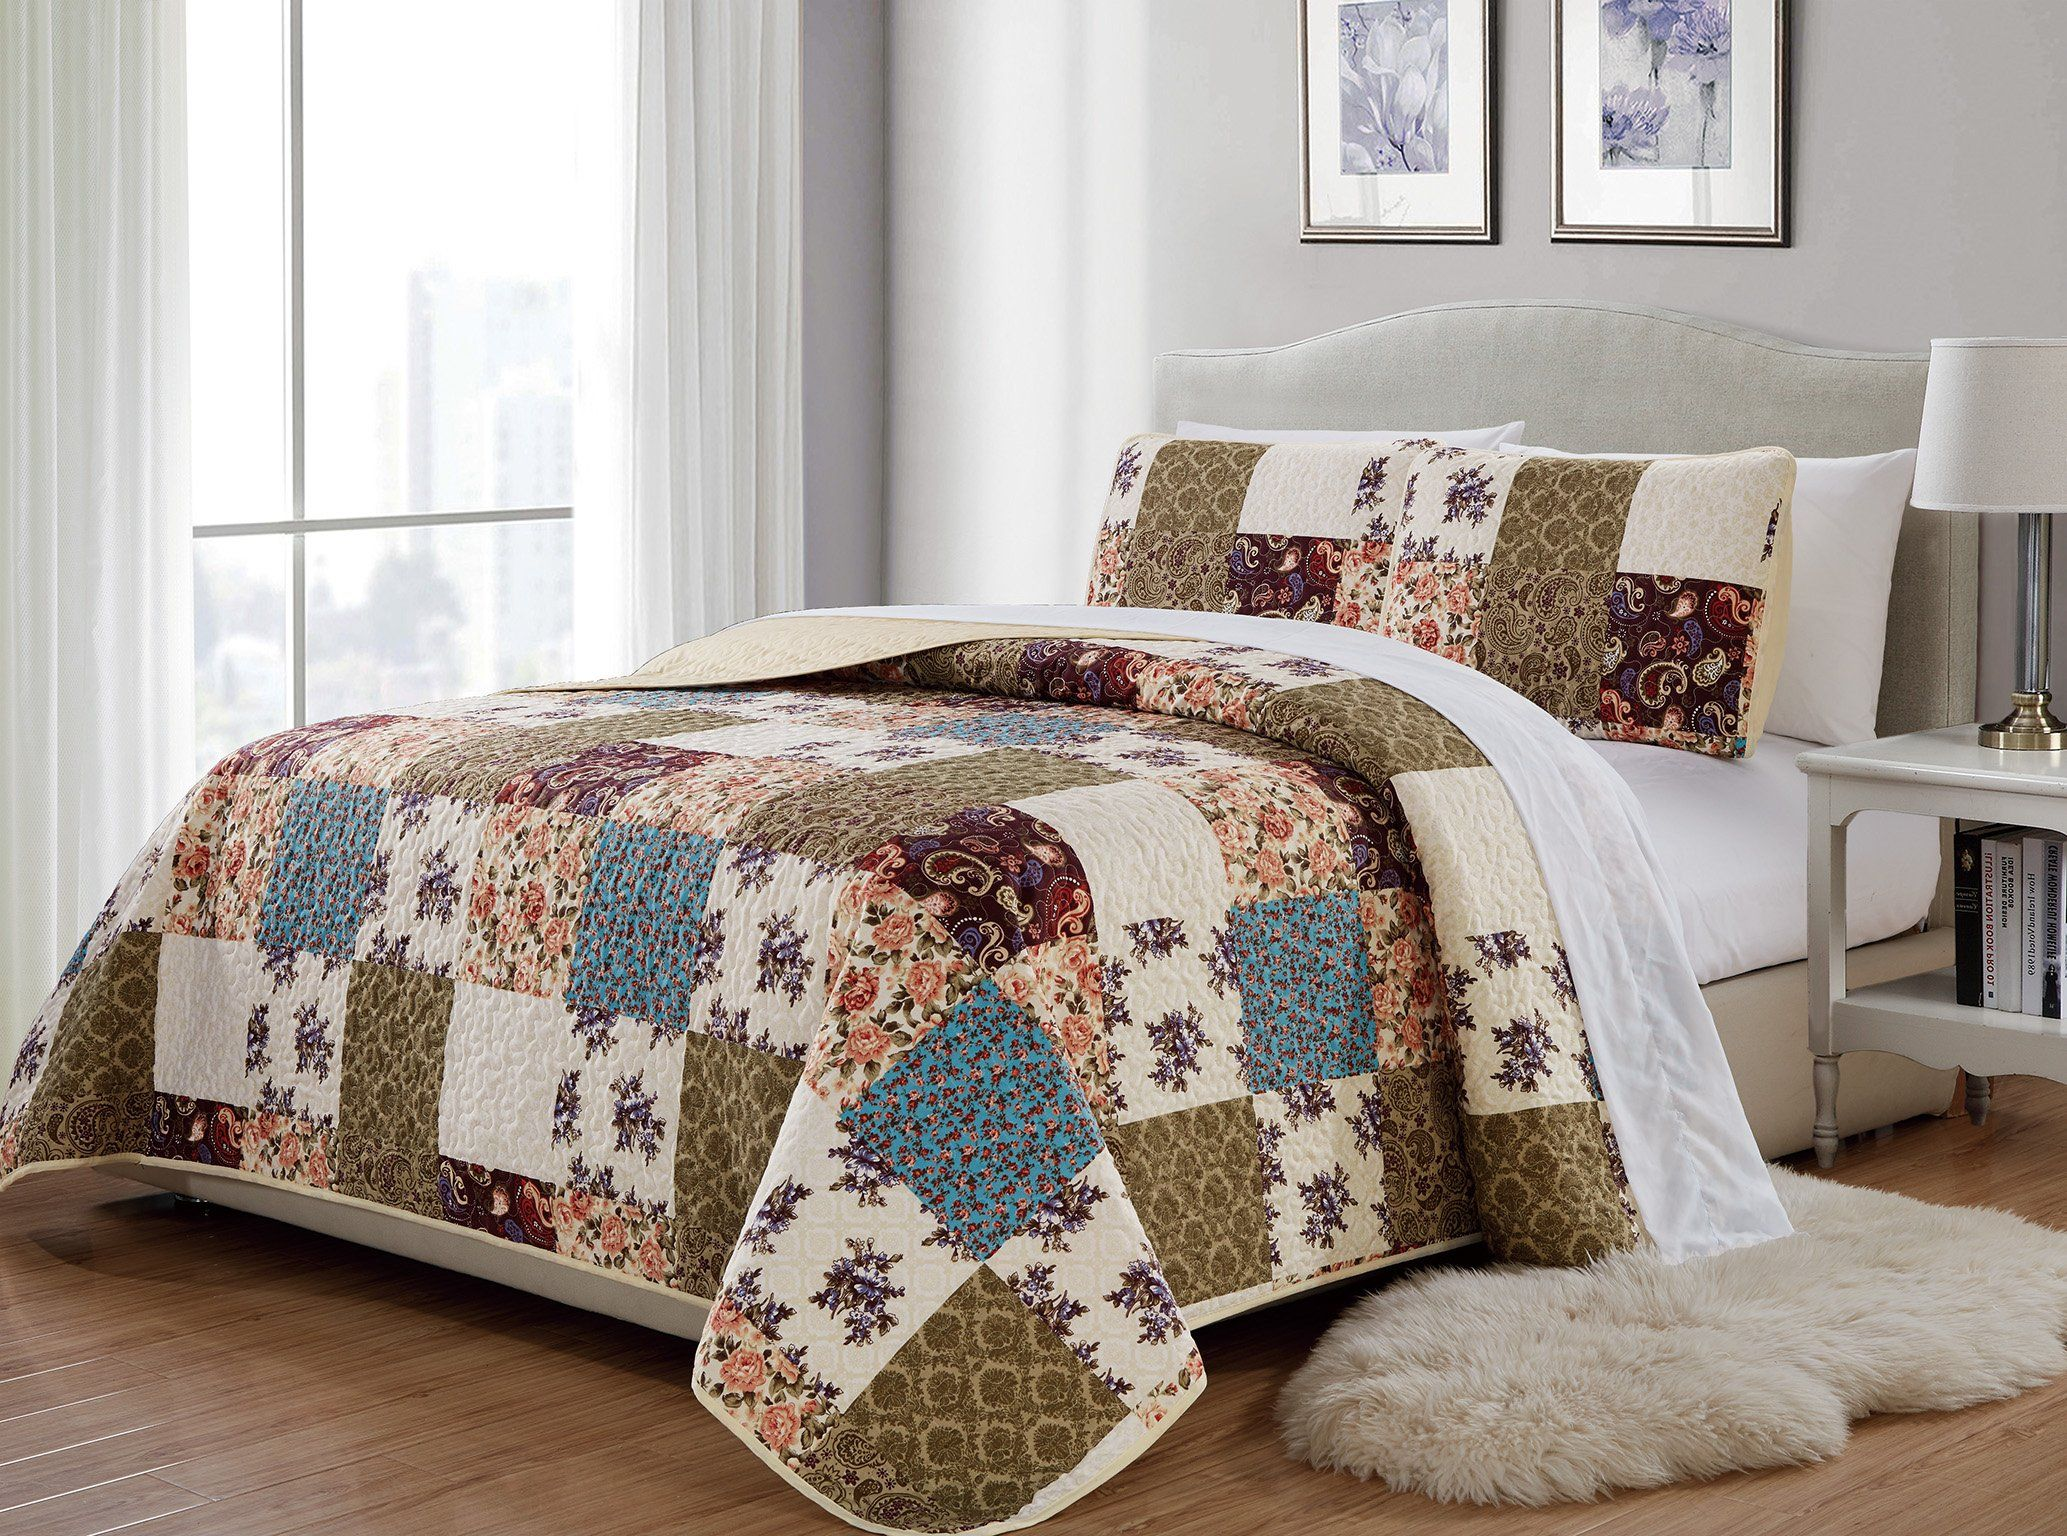 Mk 3pc King California King Home Bedspread Quilted Print Floral Beige Burgundy Purple Blue Taupe Over Size New Bed Spreads Queen Bedspread Quilt Sets Bedding California king quilts and coverlets